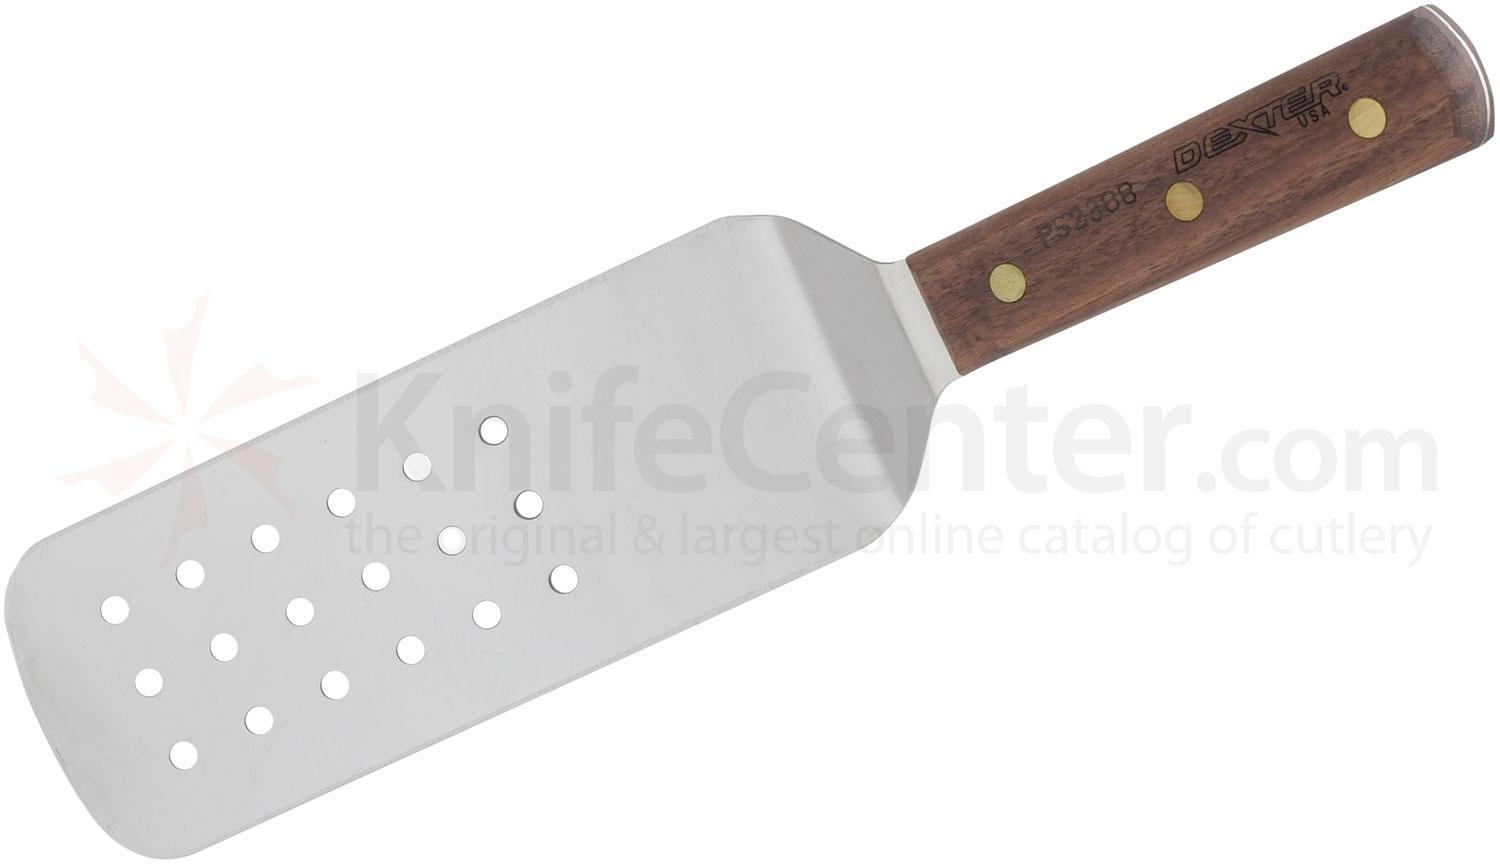 Dexter Perforated Cake Turner Walnut Handle 14 inch Overall Length Spatula, Made in the USA